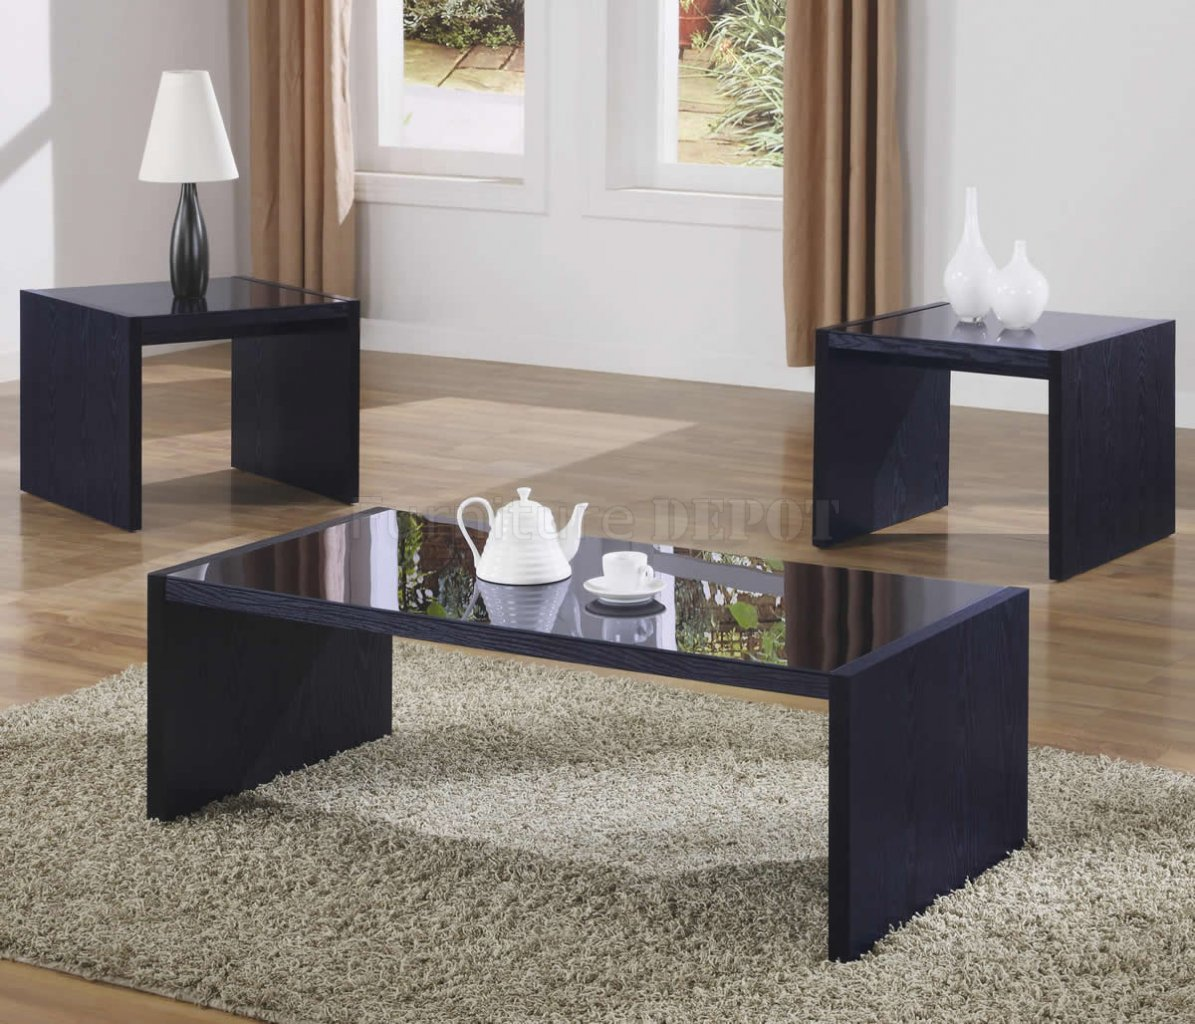 Black Coffee Table Set If Your Living Room Has A TV Or Gaming Device The Drawers Can Be As Functional As Possible To Keep The Remote Controls Game Consoles (Image 4 of 10)